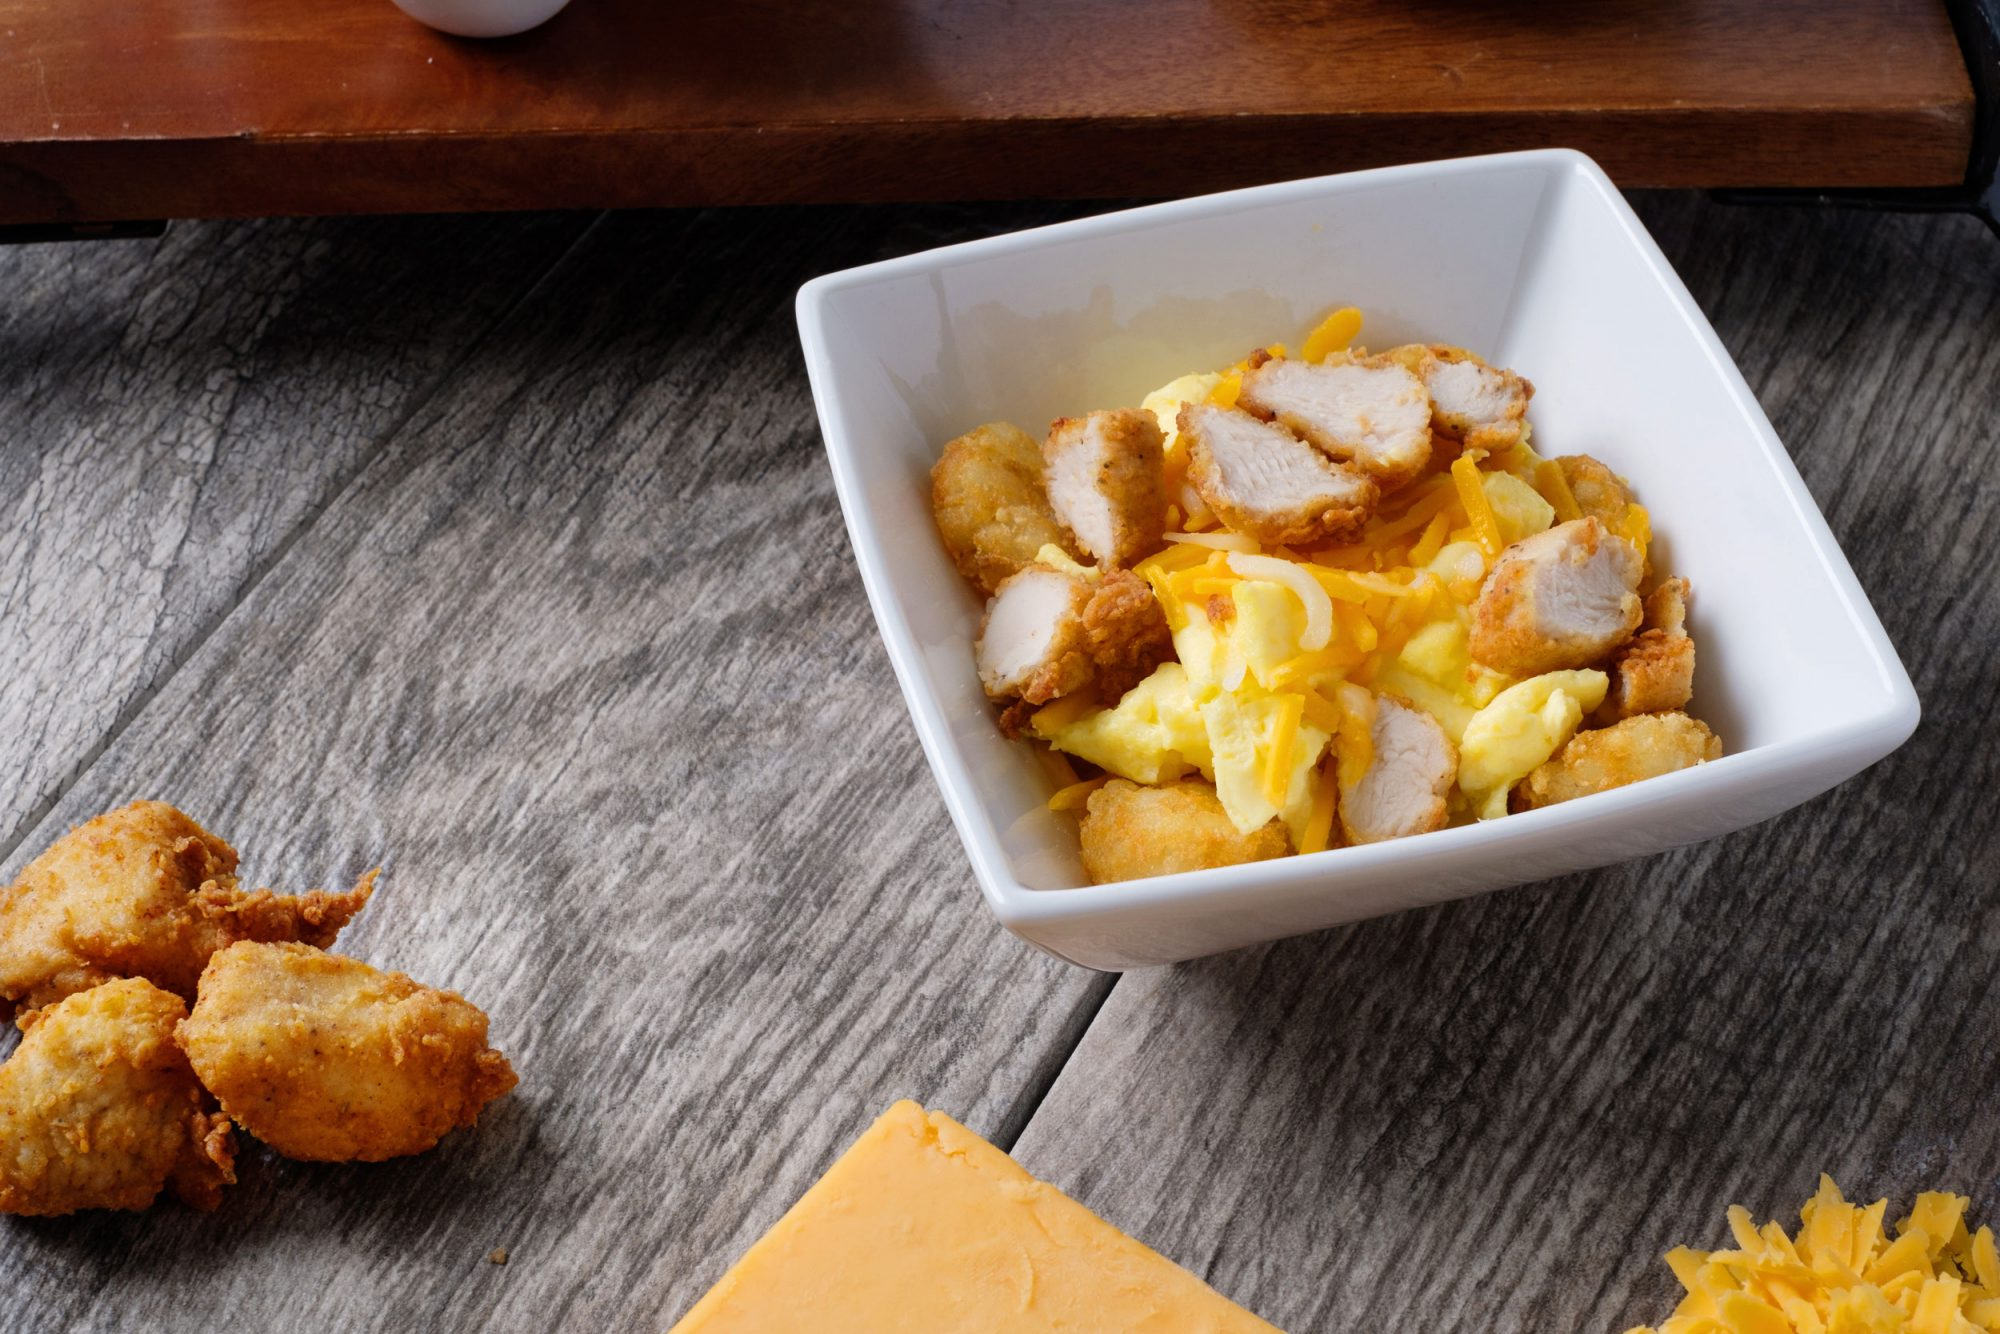 Chick-fil-a rolls out a new breakfast bowl